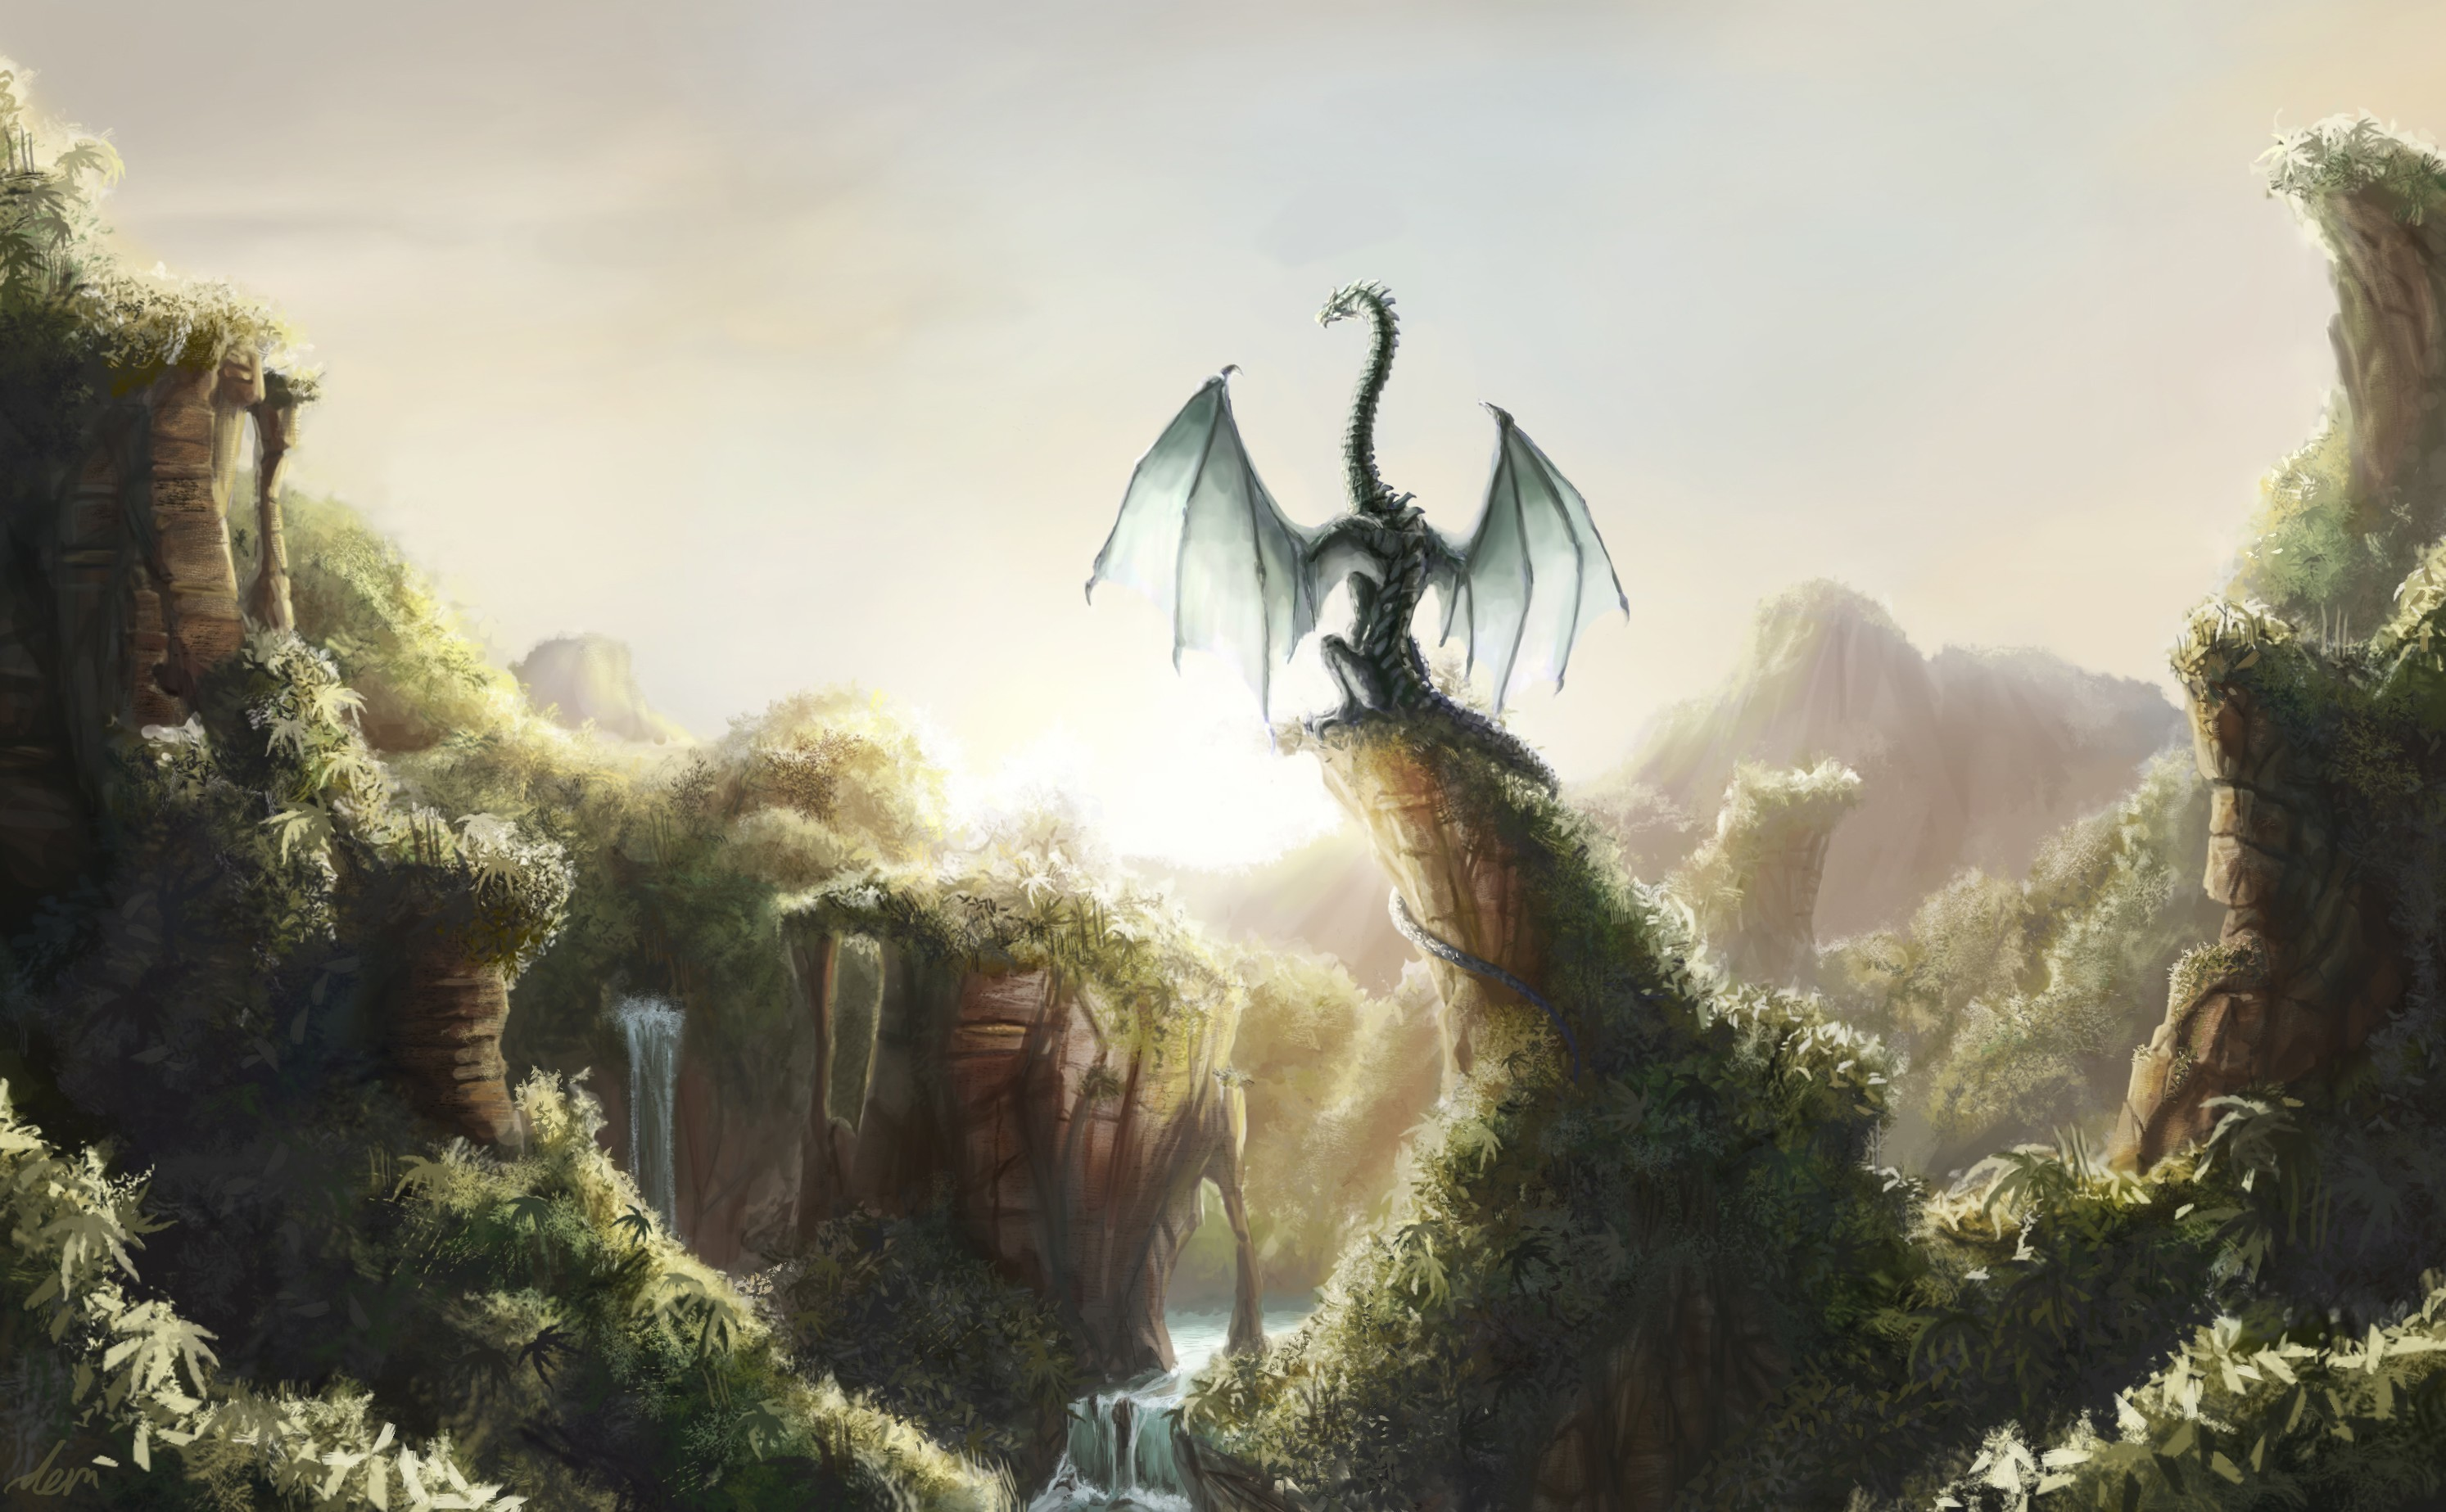 2987x1847 Dragons Fantastic world Fantasy dragon waterfall jungle forest river  wallpaper